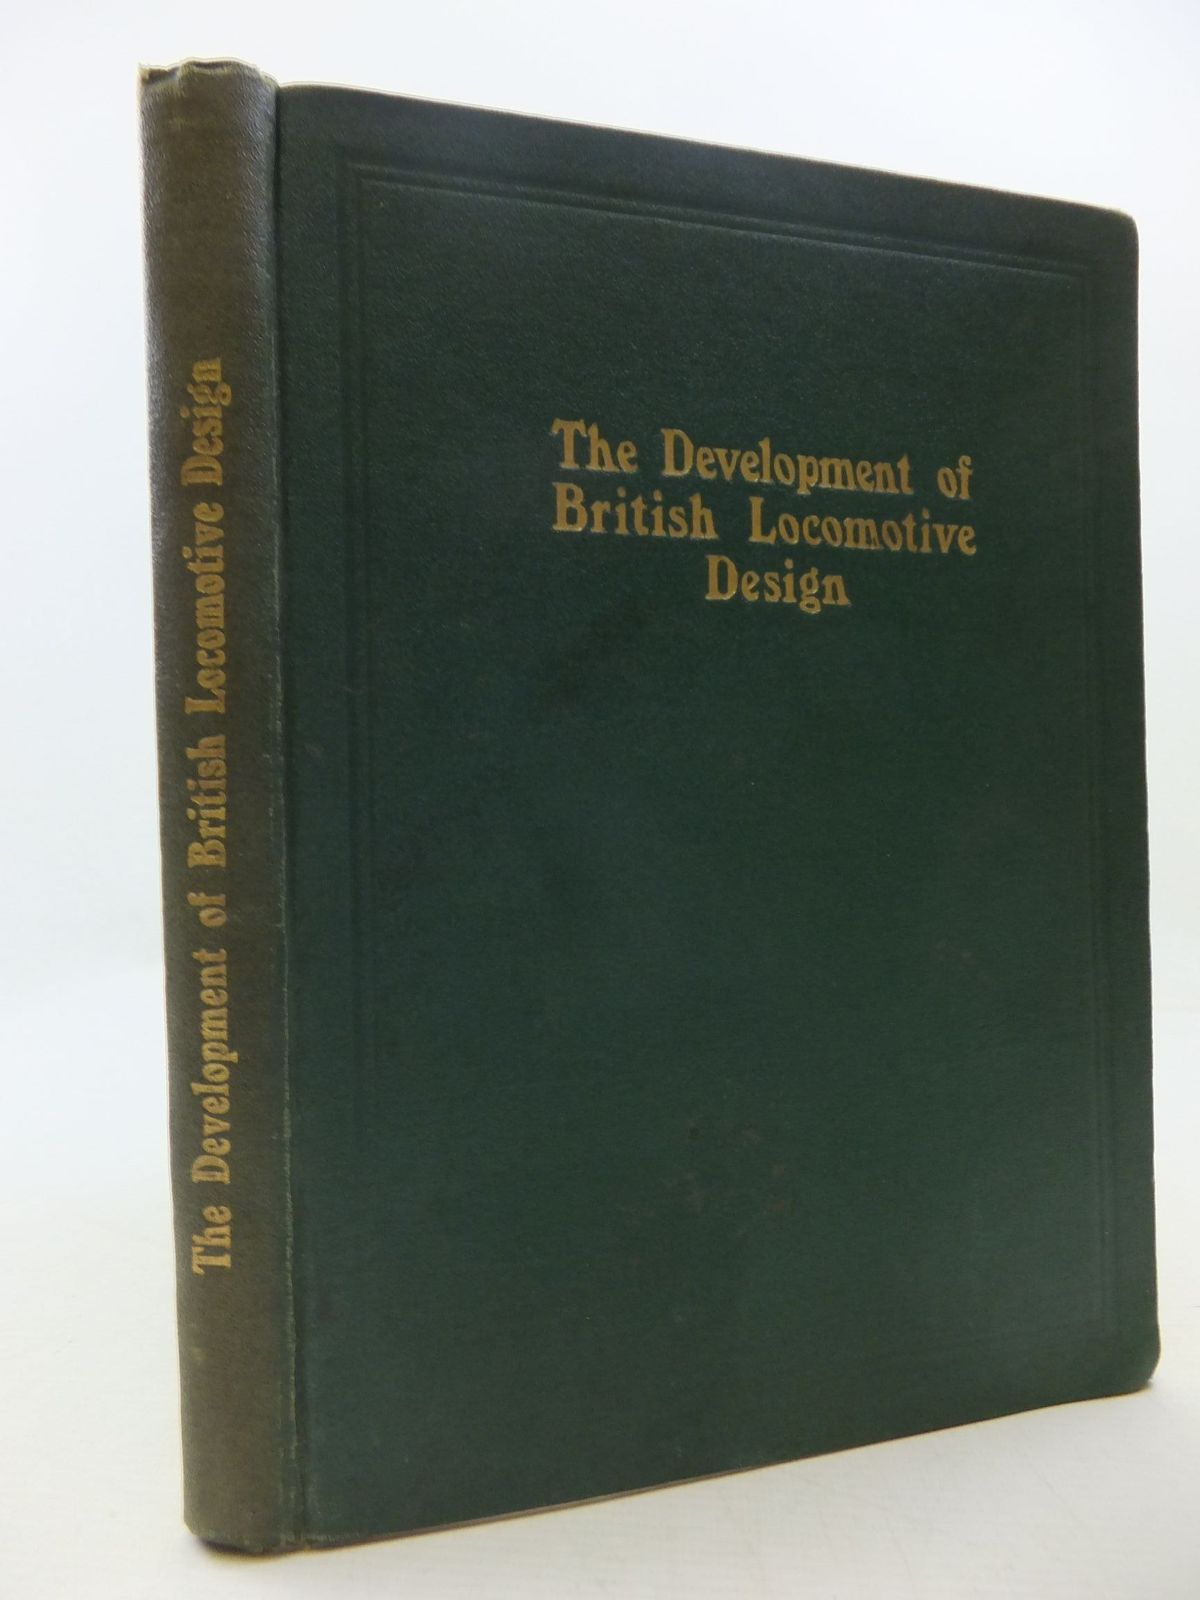 Photo of THE DEVELOPMENT OF BRITISH LOCOMOTIVE DESIGN written by Ahrons, E.L. published by Locomotive Publishing Co. Ltd. (STOCK CODE: 1808024)  for sale by Stella & Rose's Books